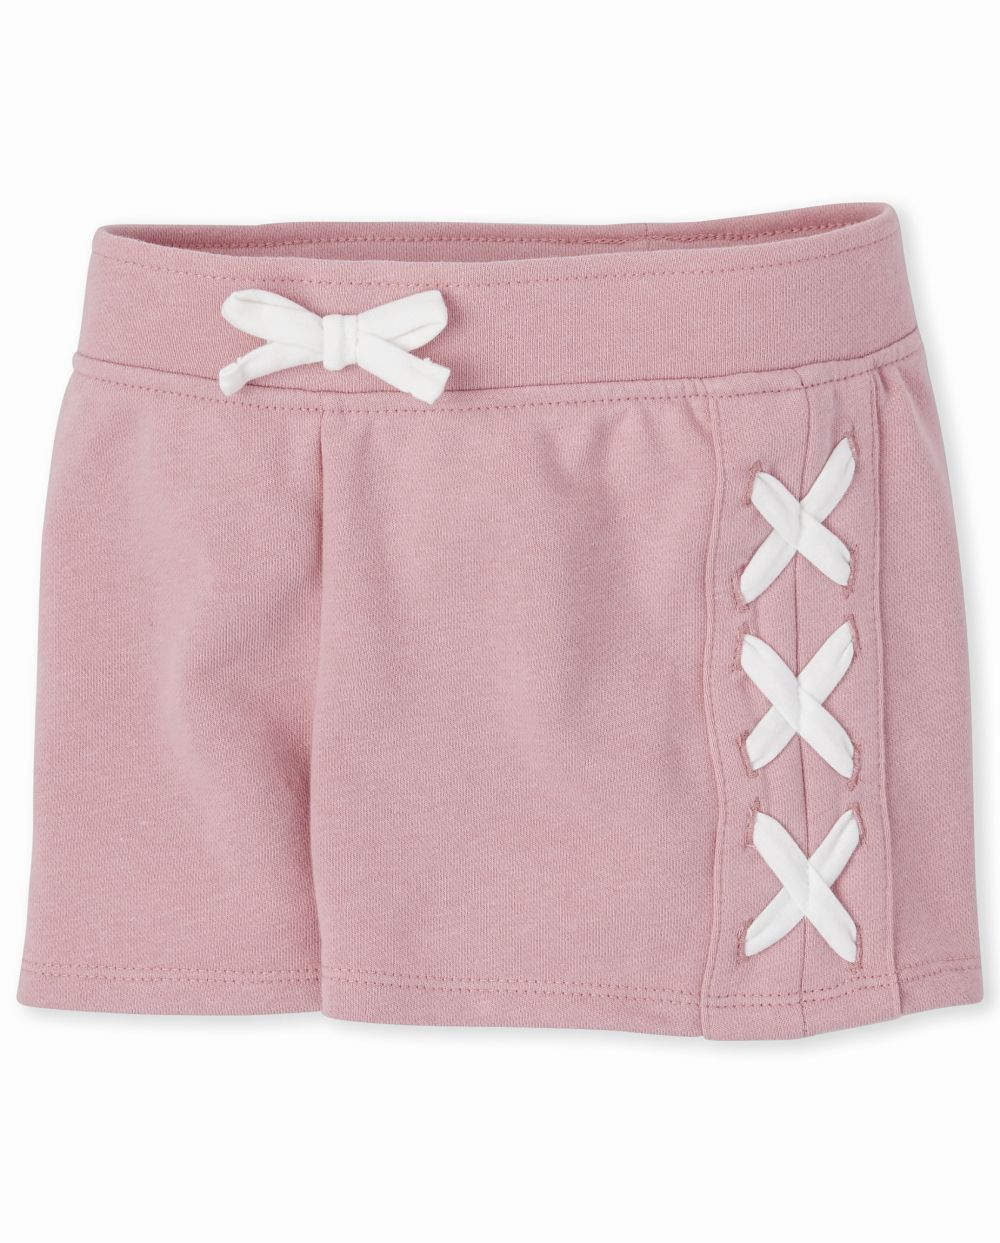 Girls Active French Terry Lace Up Shorts